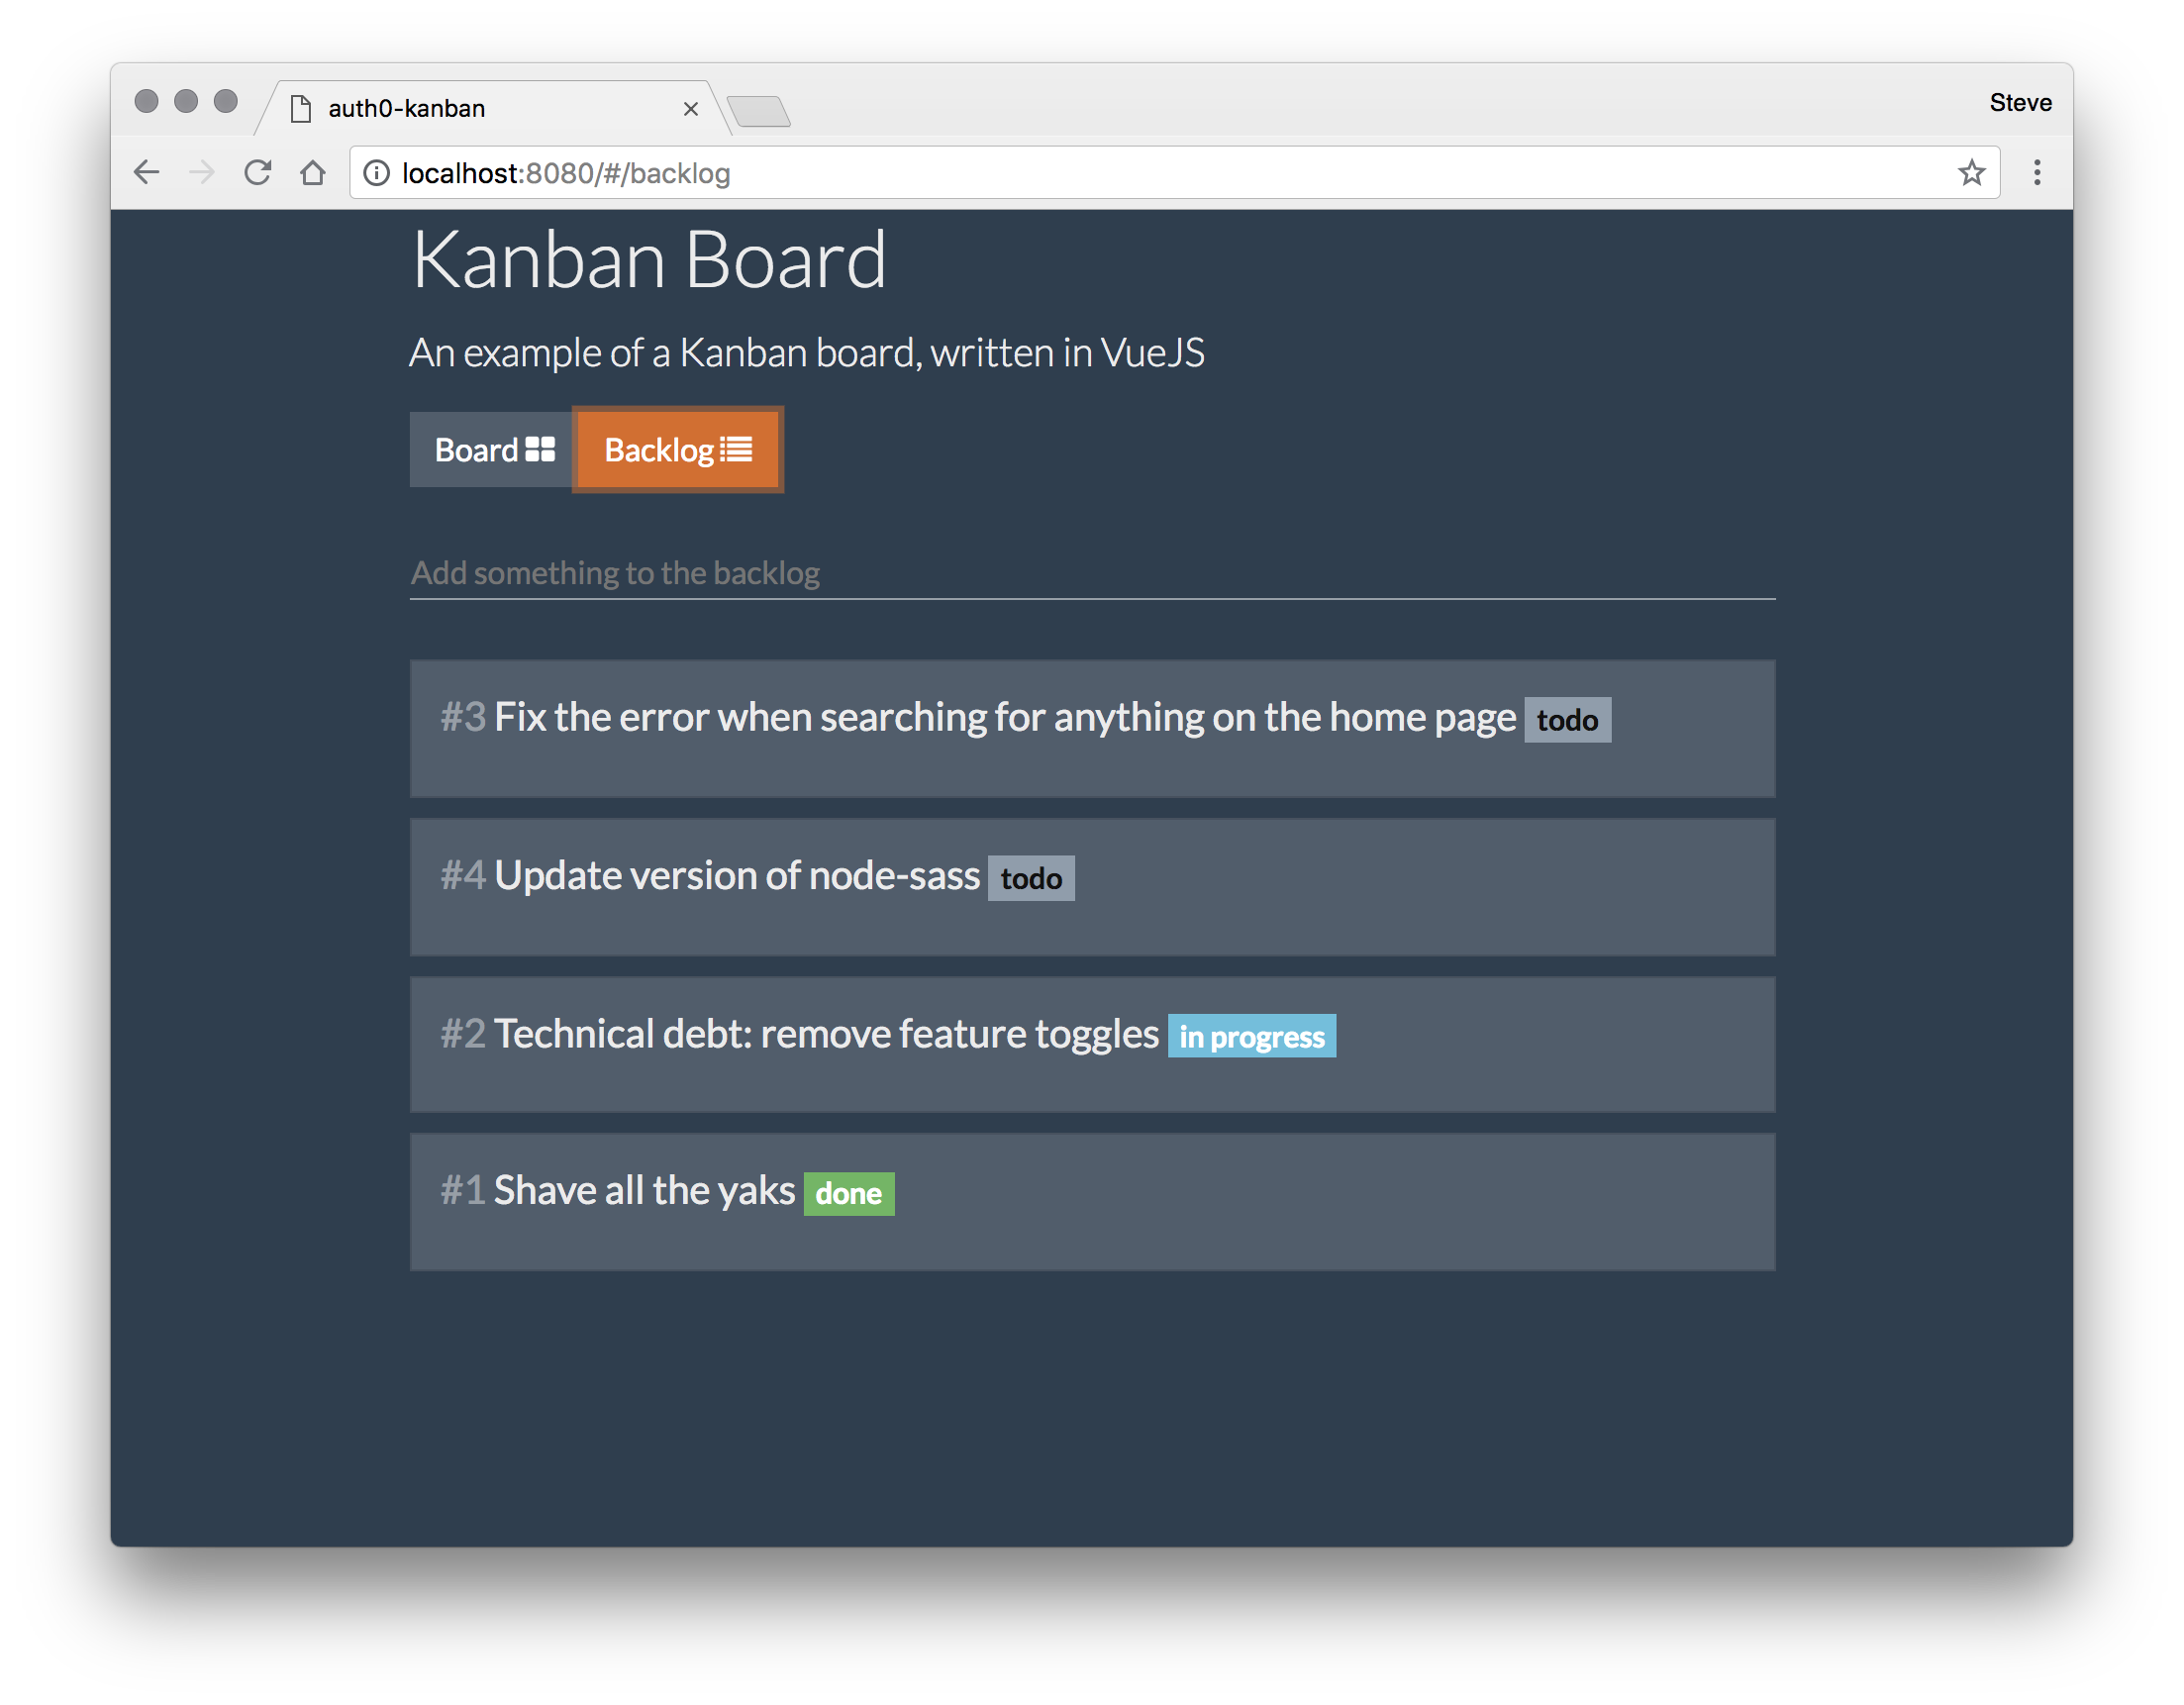 Preview of the Kanban Board application